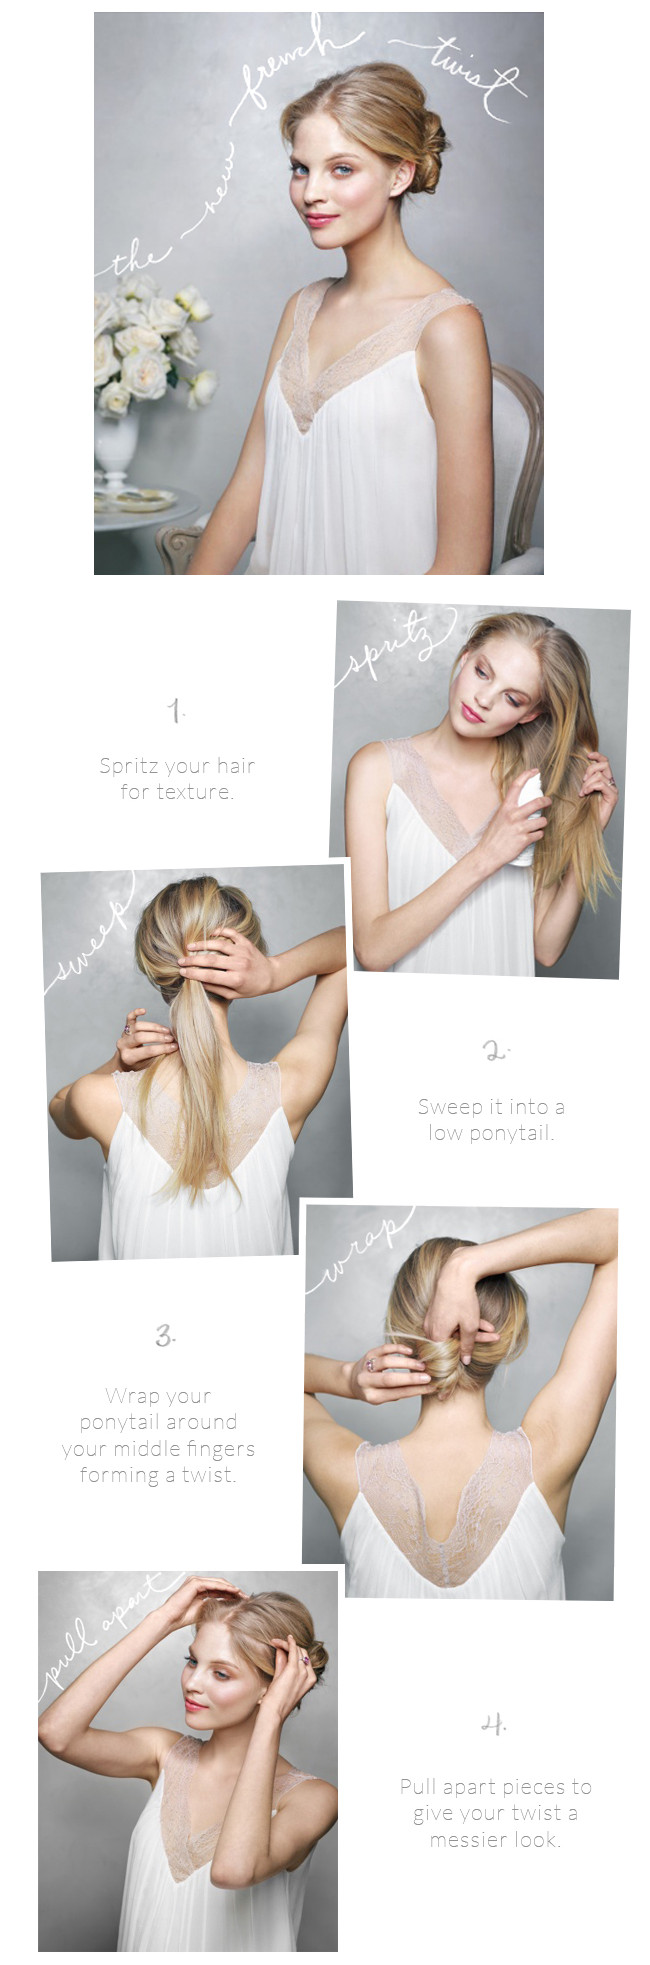 Best ideas about DIY Wedding Hairstyles For Long Hair . Save or Pin The New French Twist Wedding Hairstyles Tutorial ce Wed Now.